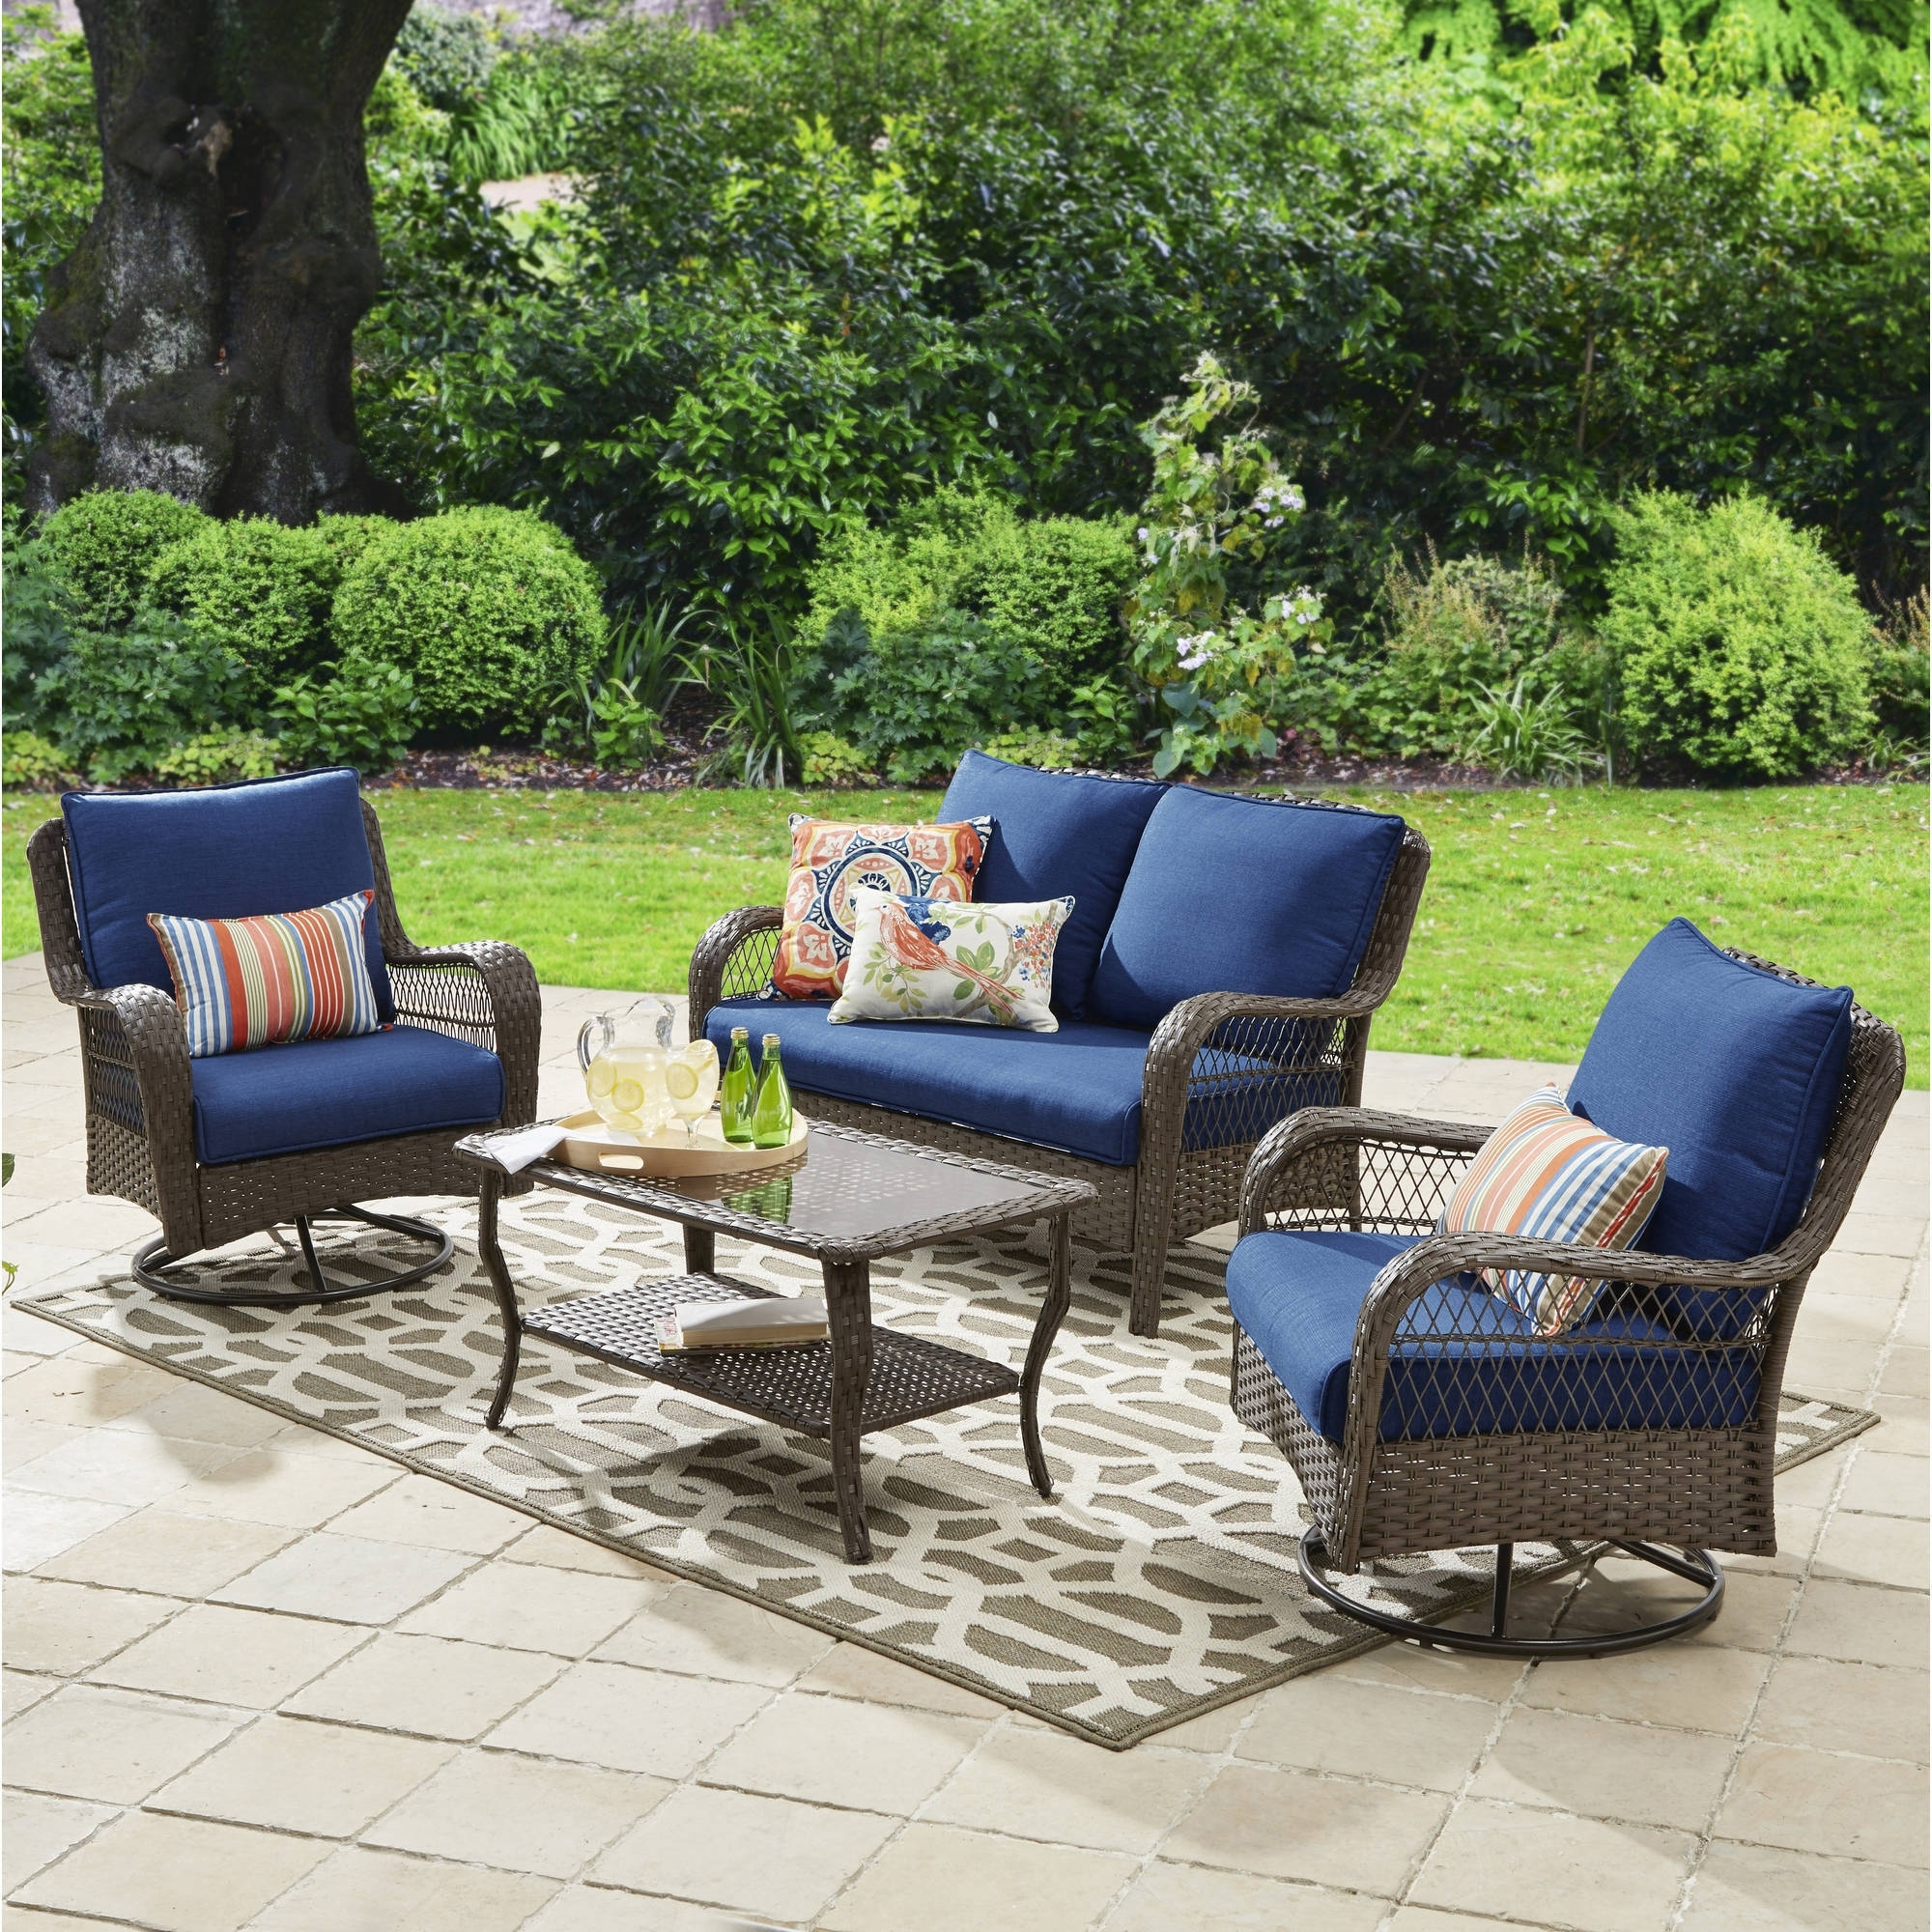 Patio Conversation Sets At Walmart For Current Better Homes And Gardens Colebrook 4 Piece Outdoor Conversation Set (View 2 of 15)